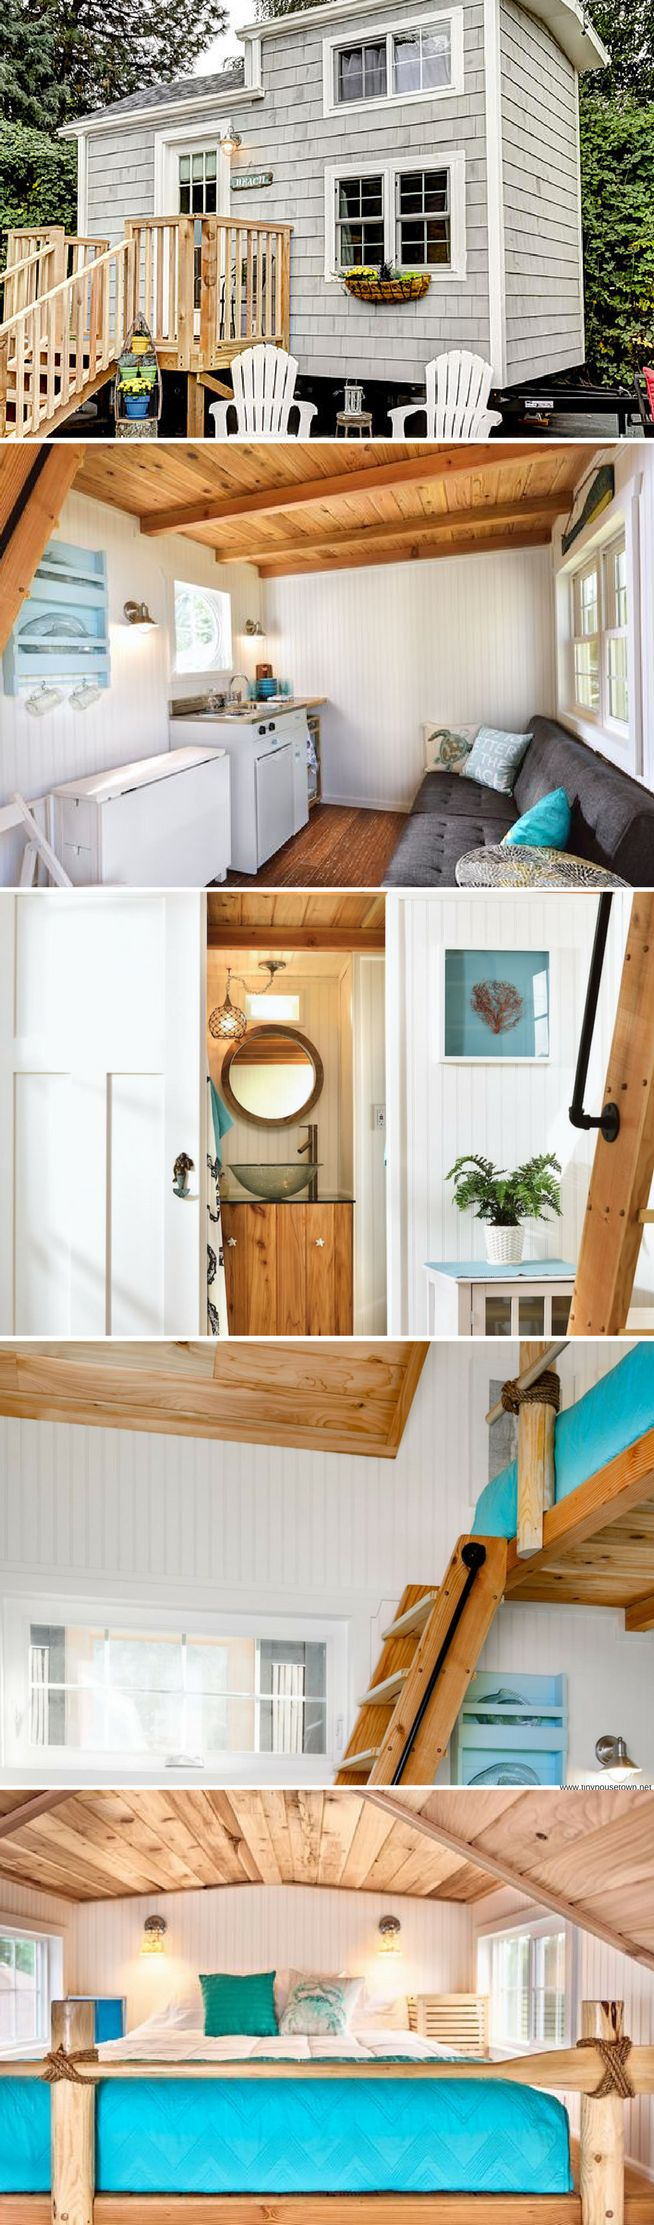 the beach tiny house at the tiny digs hotel in portland - Tiny House Interior Design Ideas